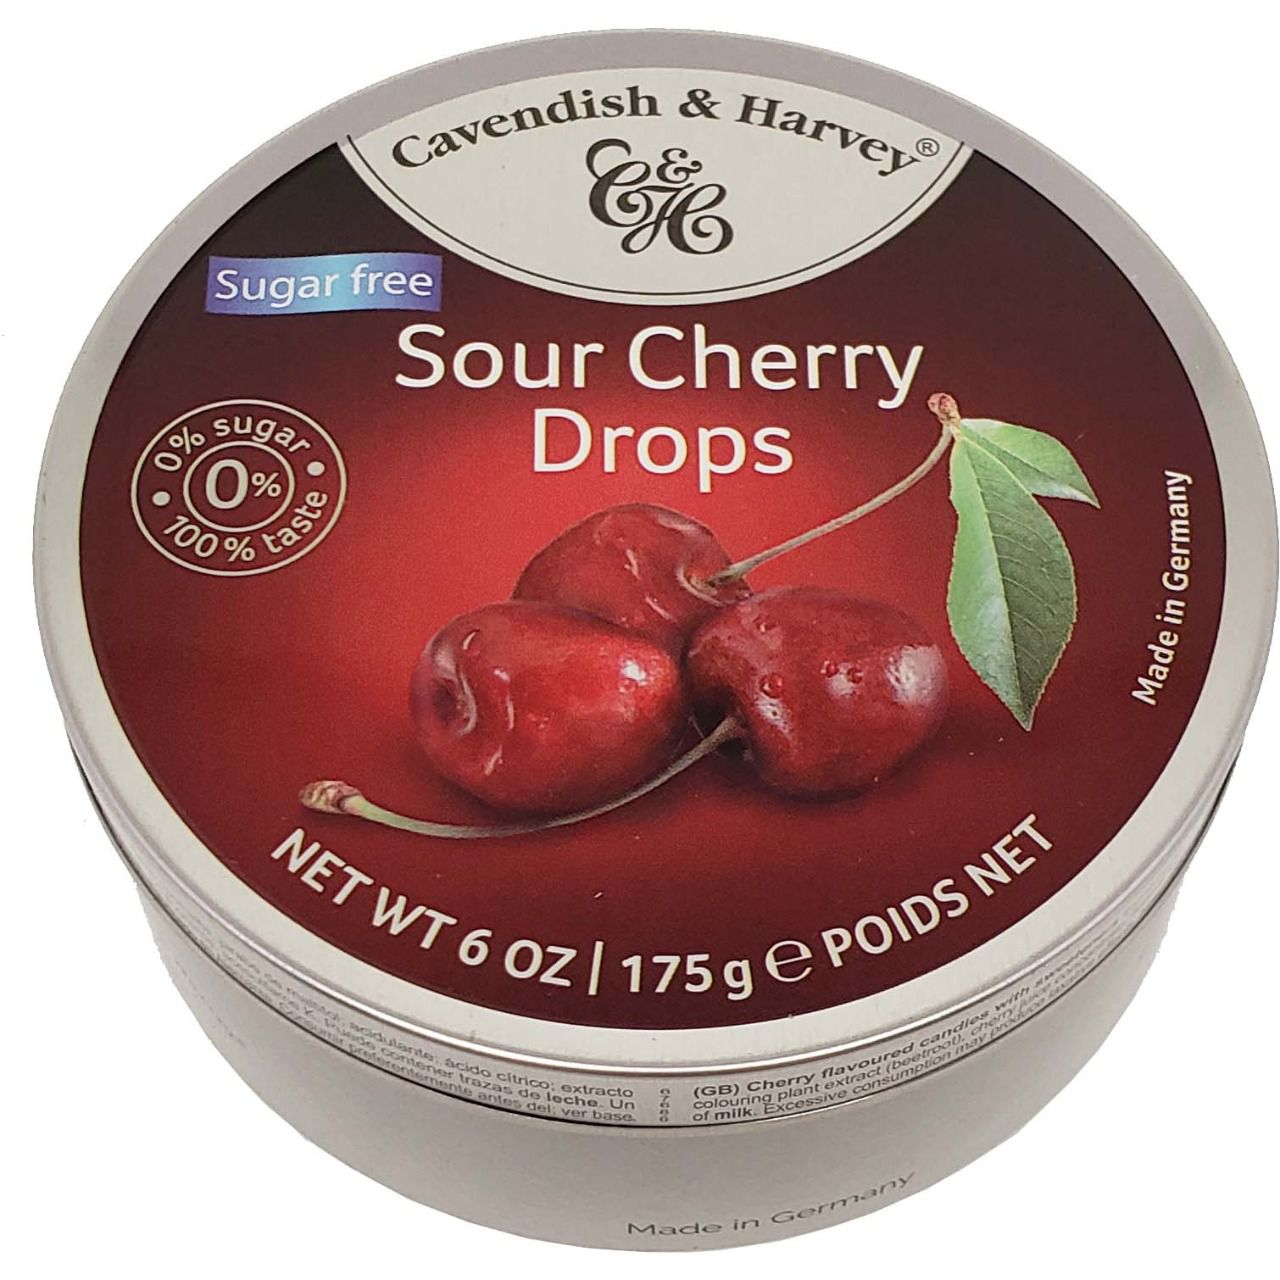 Balas Sugar Free Sour Cherry Drops Cavendish & Harvey - 175g -